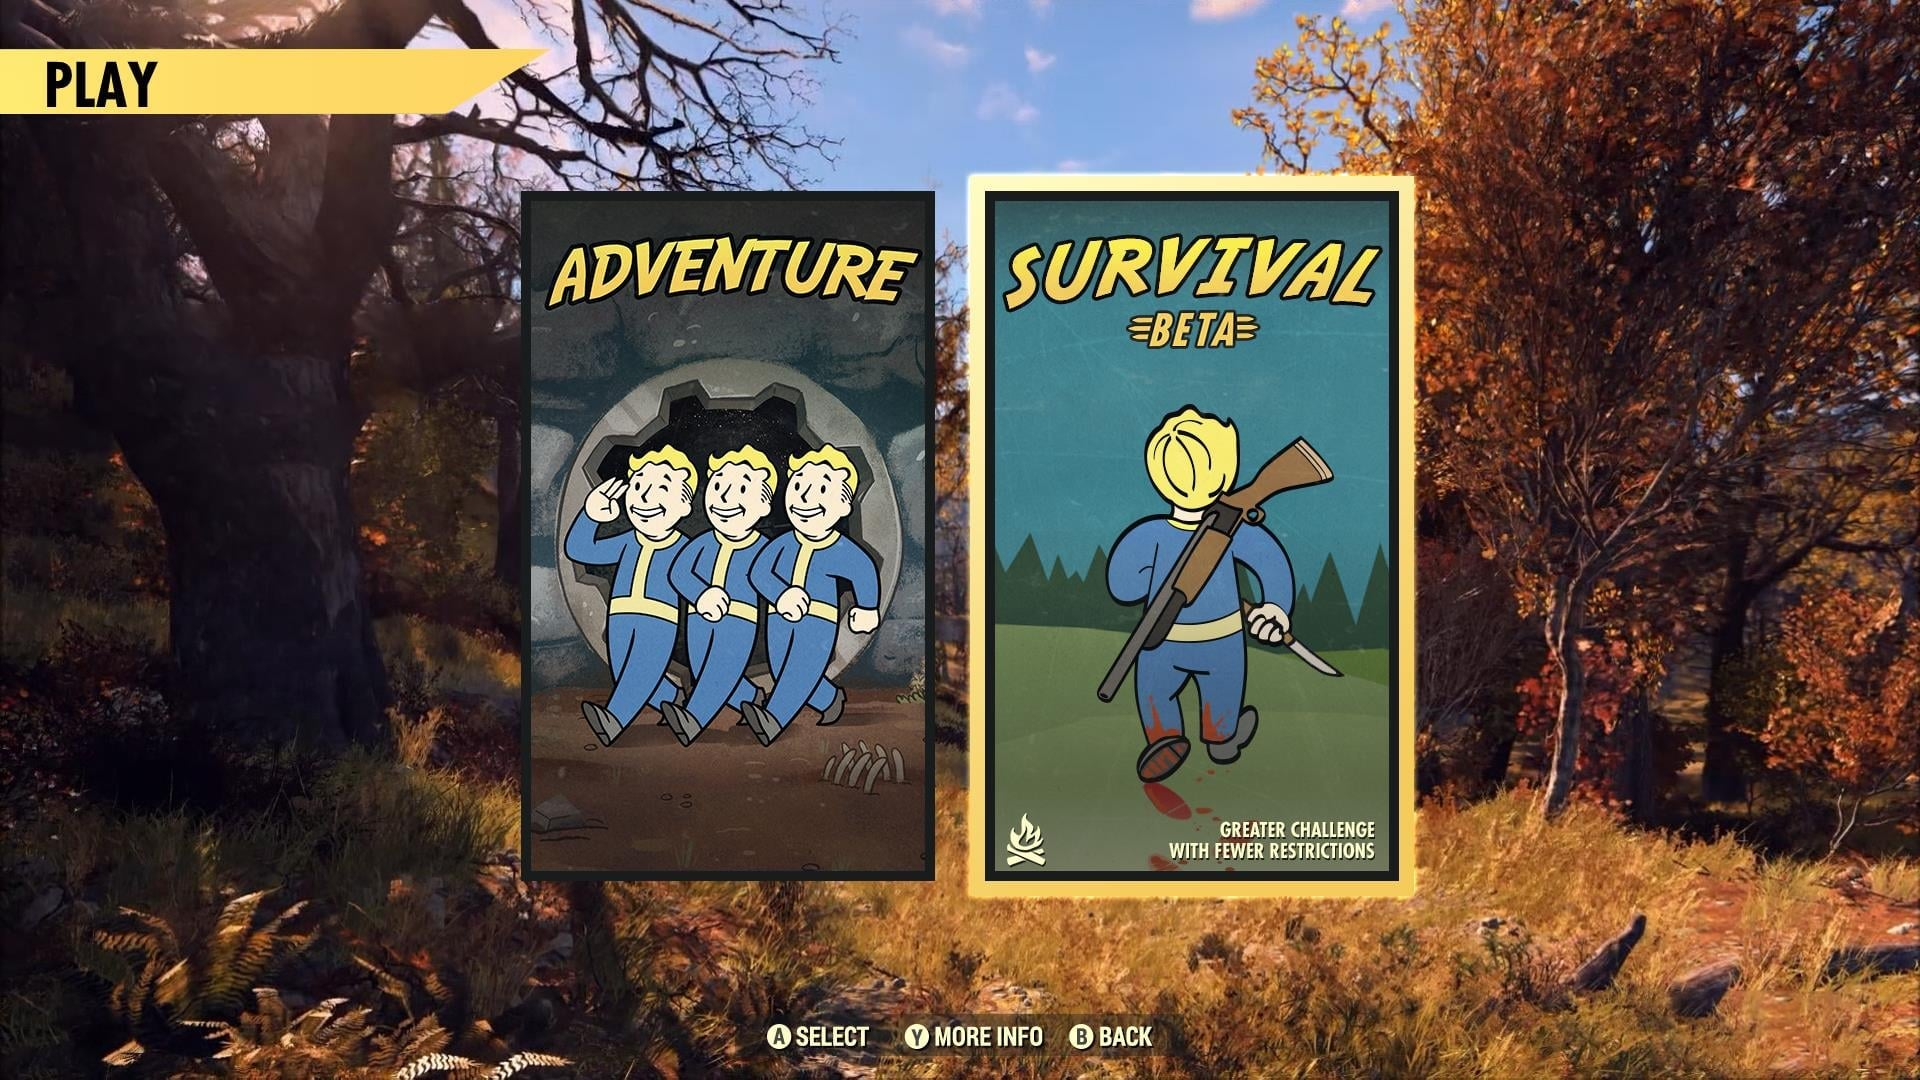 New Survival Mode Teased for Fallout 76